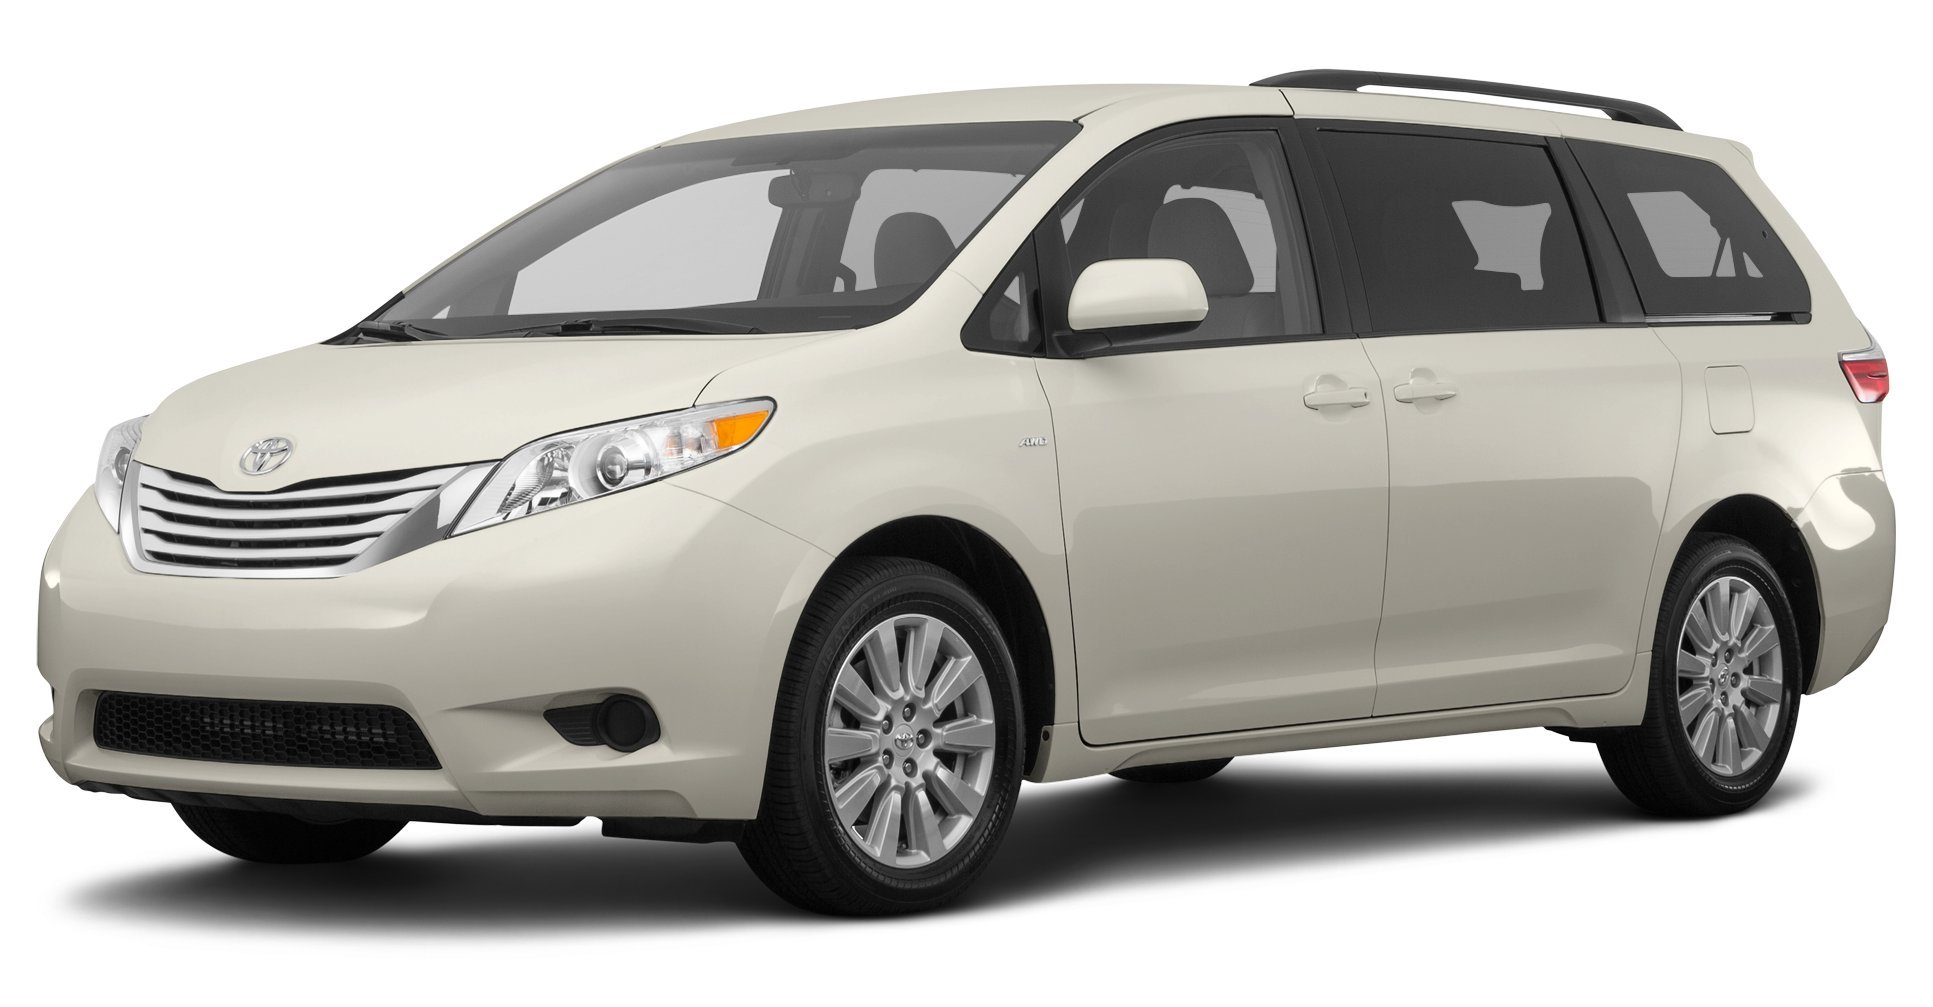 2017 toyota sienna reviews images and specs. Black Bedroom Furniture Sets. Home Design Ideas